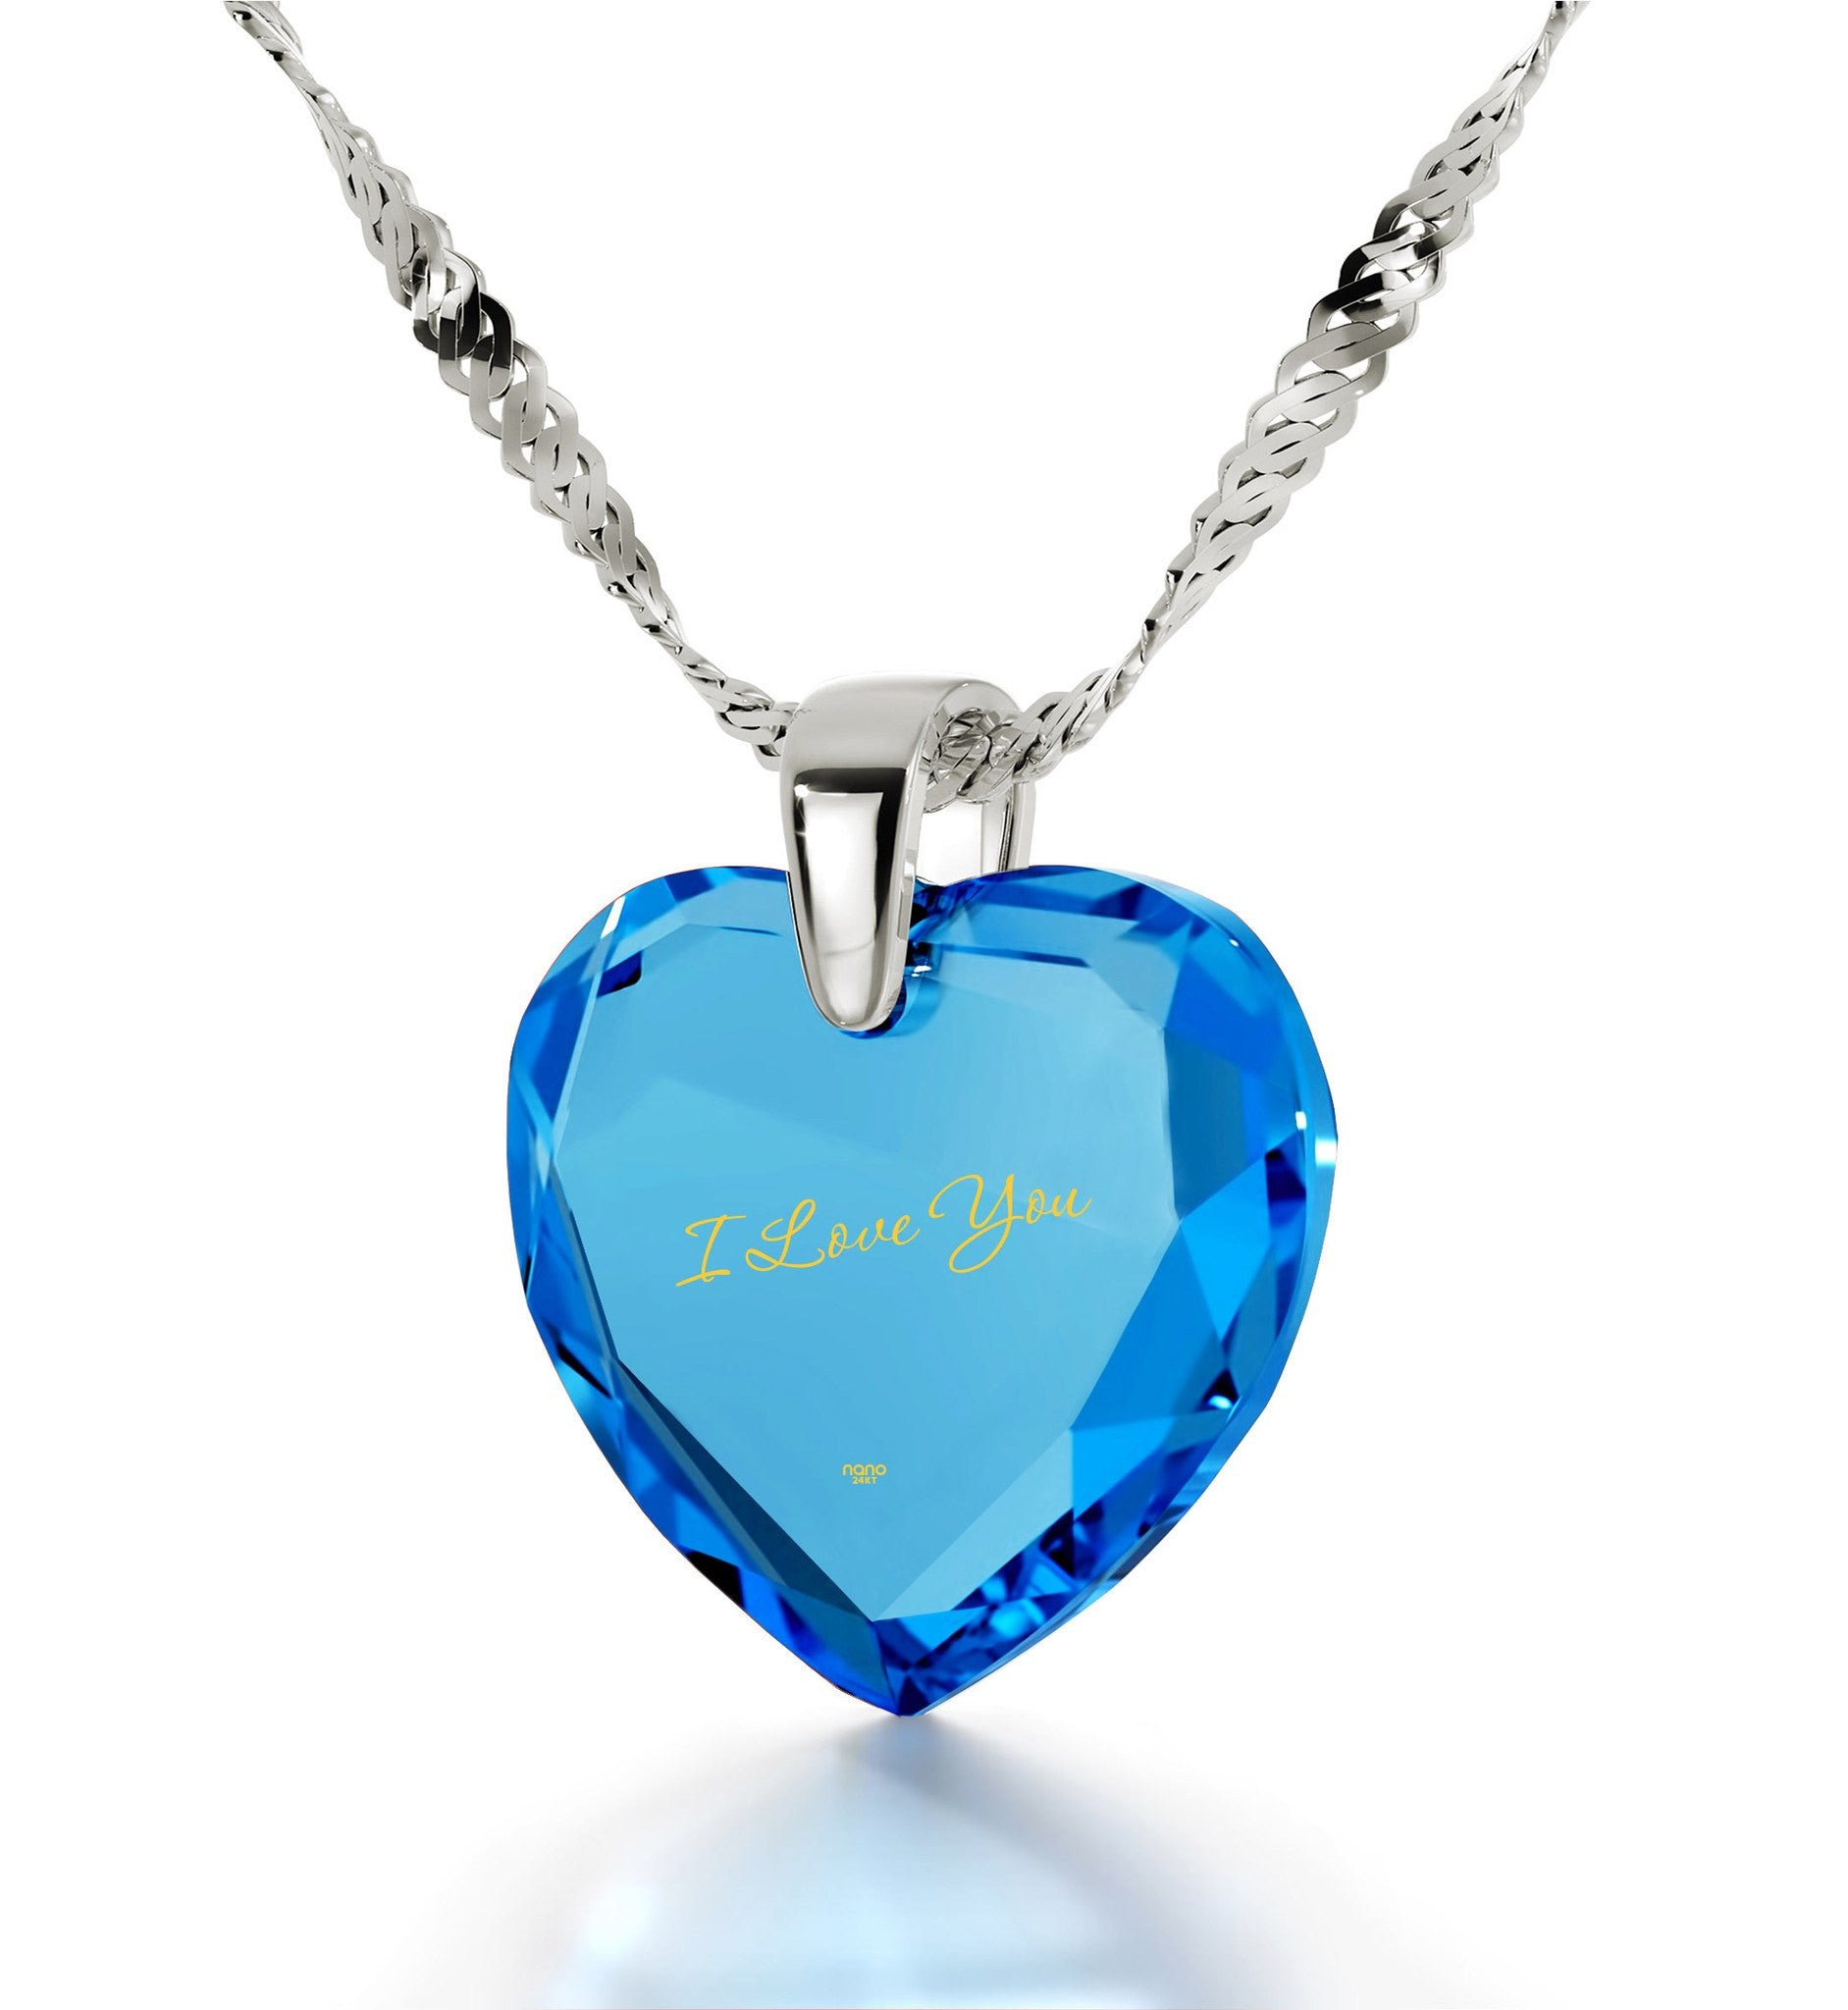 What to Buy My Wife for Christmas. Blue Heart Jewelry with 14k White Gold Chain, Cute Necklaces for Girlfriend